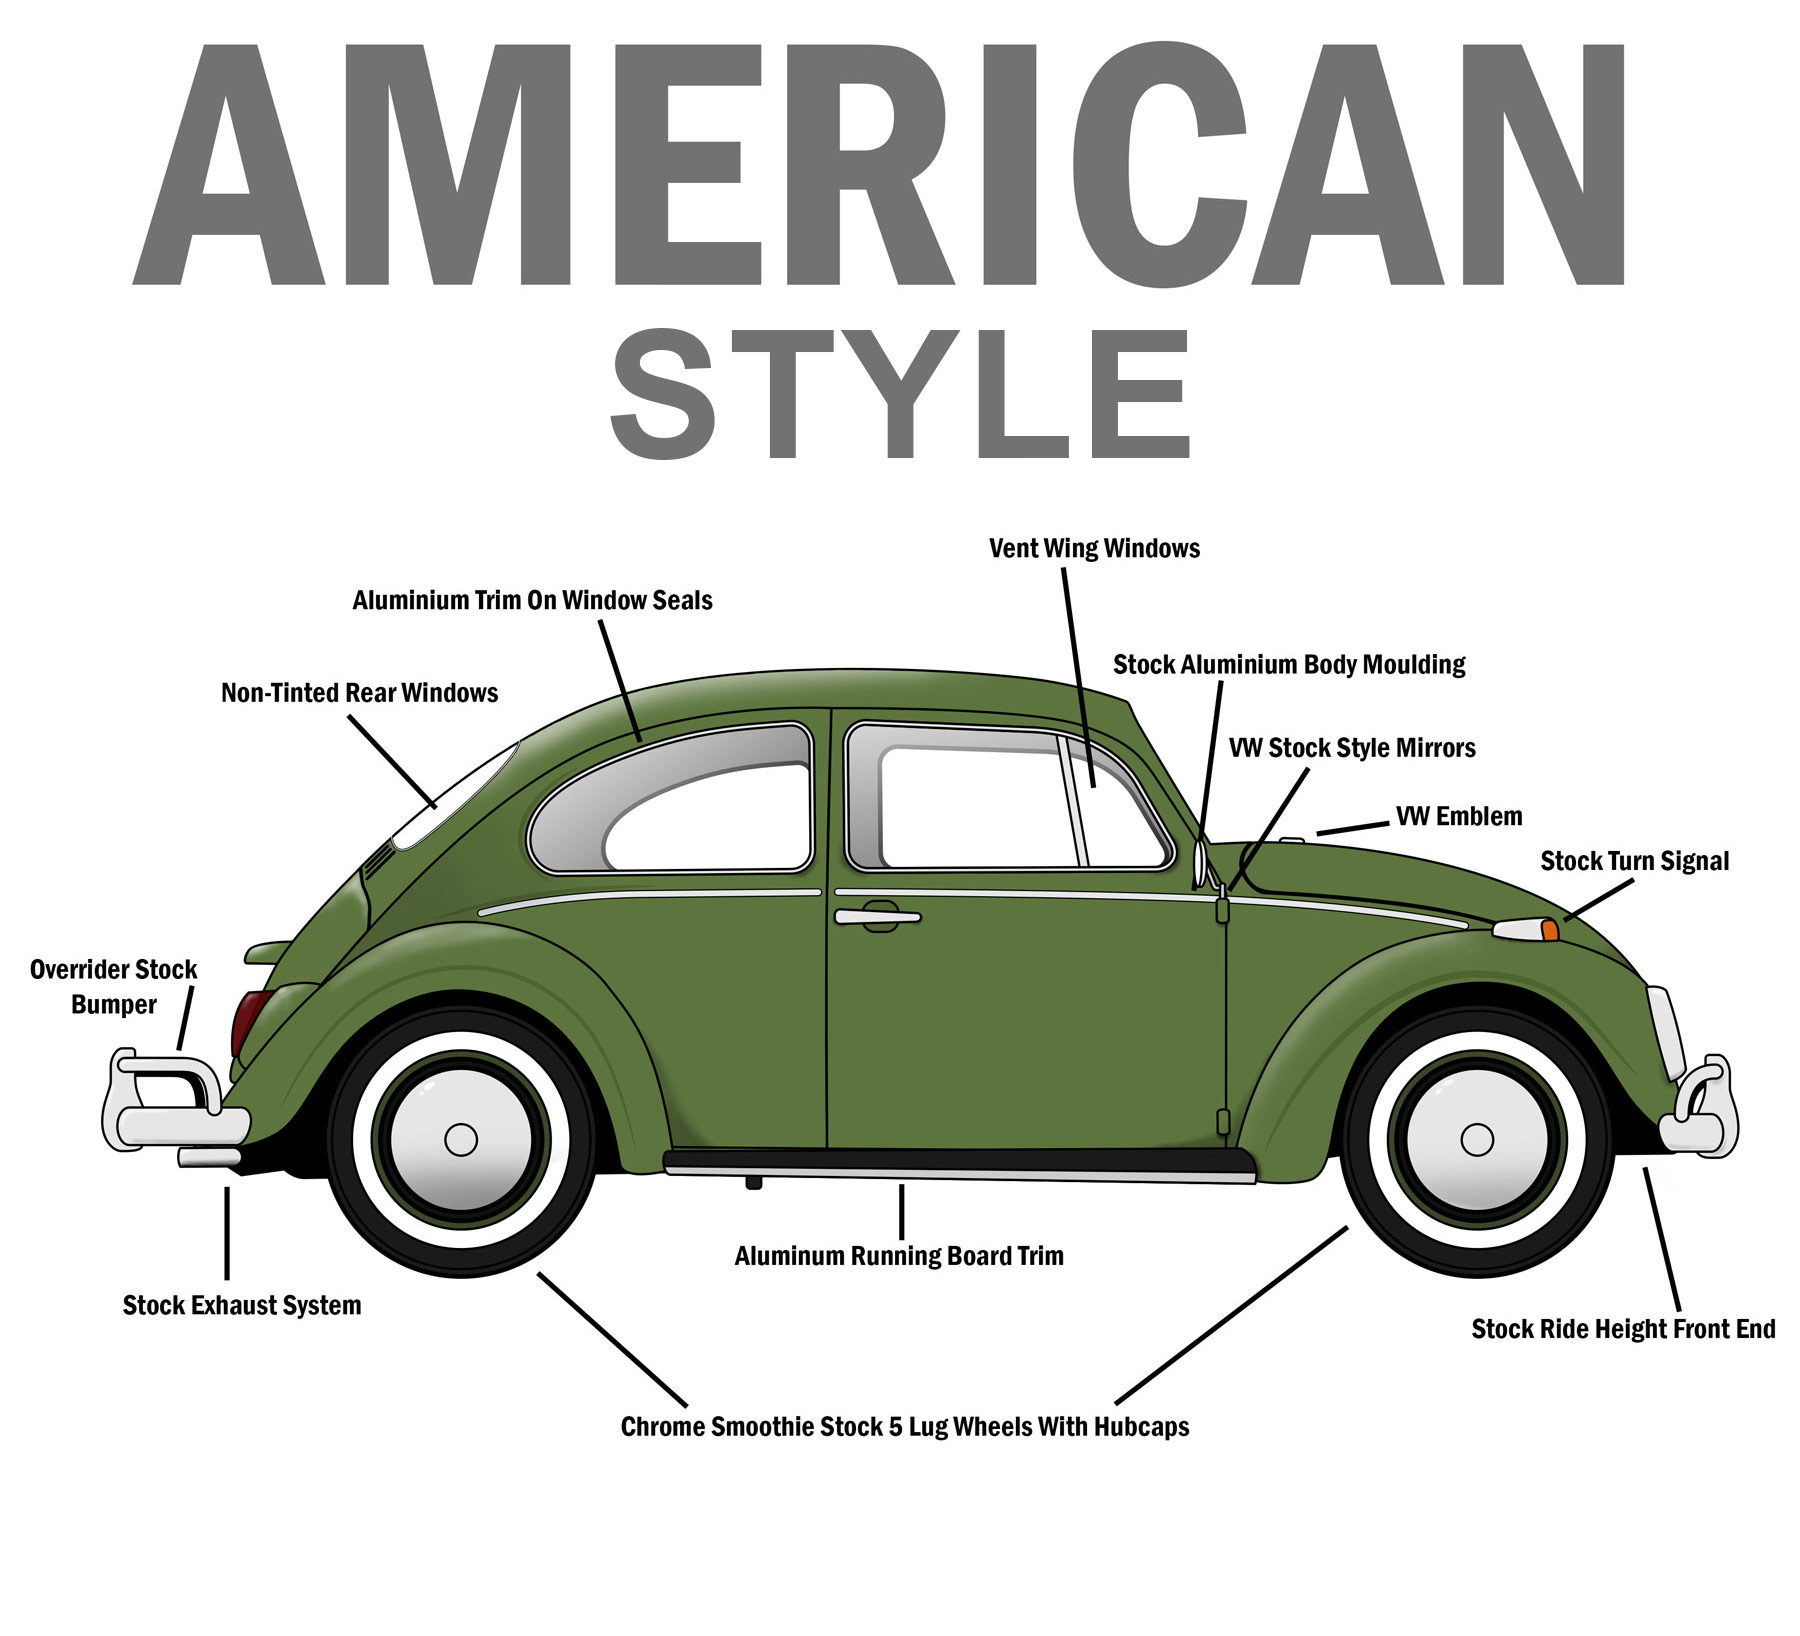 Vw Parts Cal Look Vs American Style Whats The Difference Bug Alternator Conversion Wiring Refers To Original Fashion And Trim Which Came On Air Cooled Vws Destined For Us Market Were Offered With